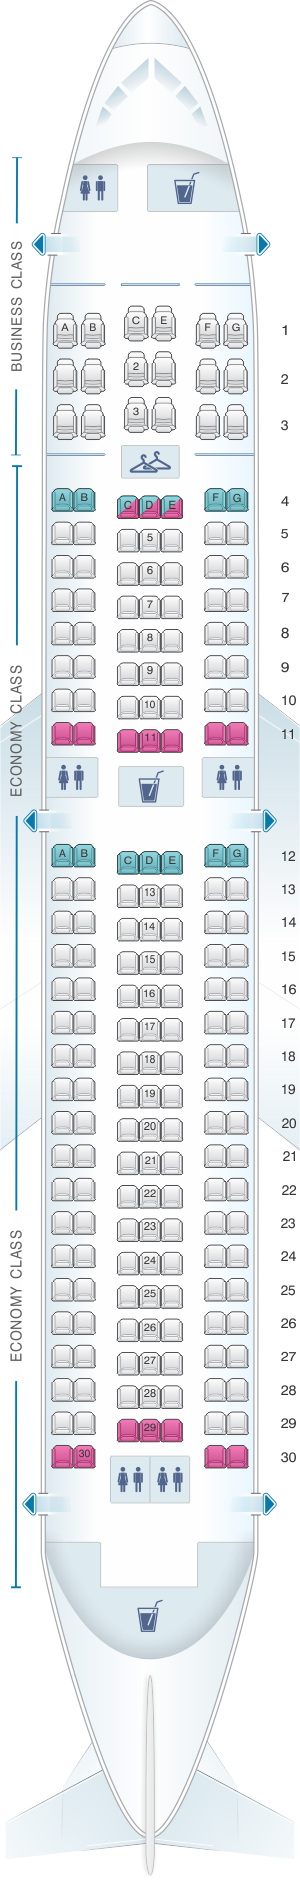 Seat map for US Airways Boeing B767 200 ER